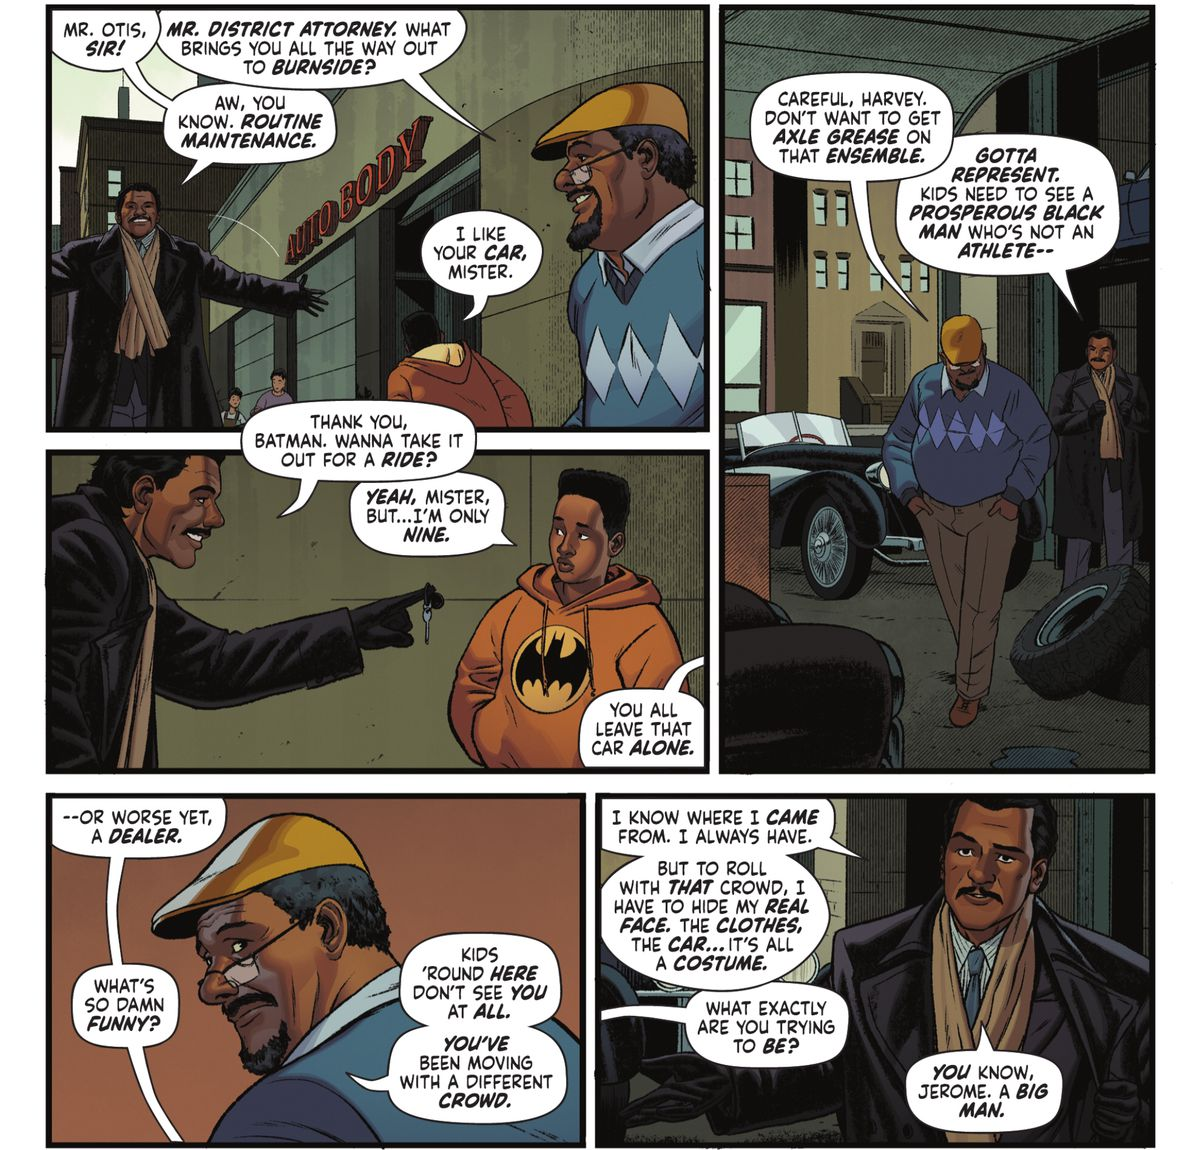 Harvey Dent visits his old neighborhood to ask for help in Batman '89 #1 (2021).